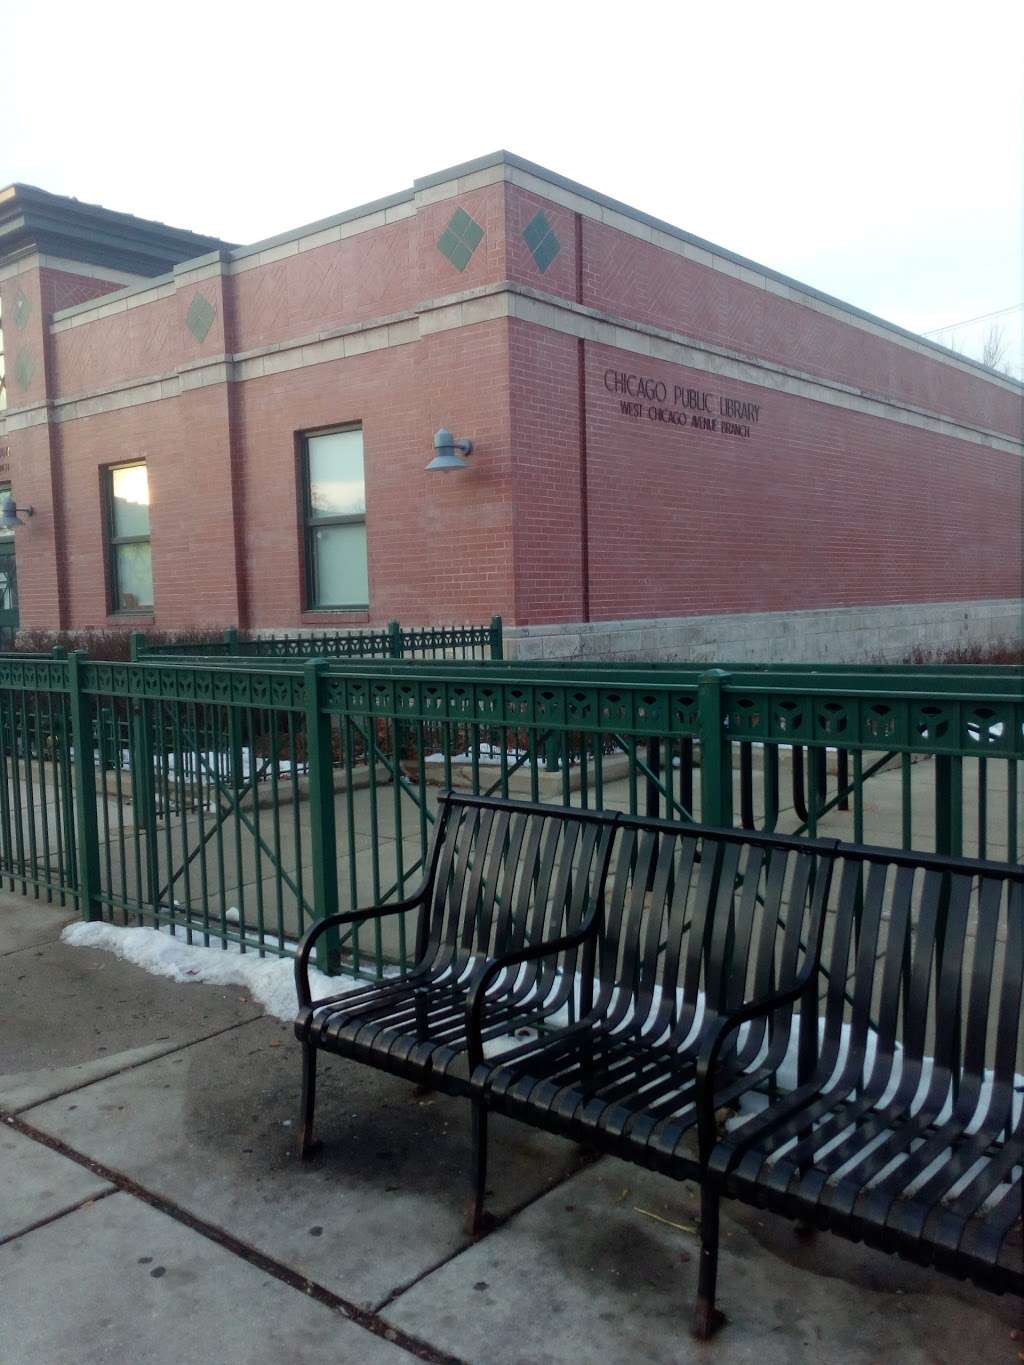 West Chicago Avenue Branch, Chicago Public Library - library  | Photo 3 of 10 | Address: 4856 W Chicago Ave, Chicago, IL 60651, USA | Phone: (312) 743-0260